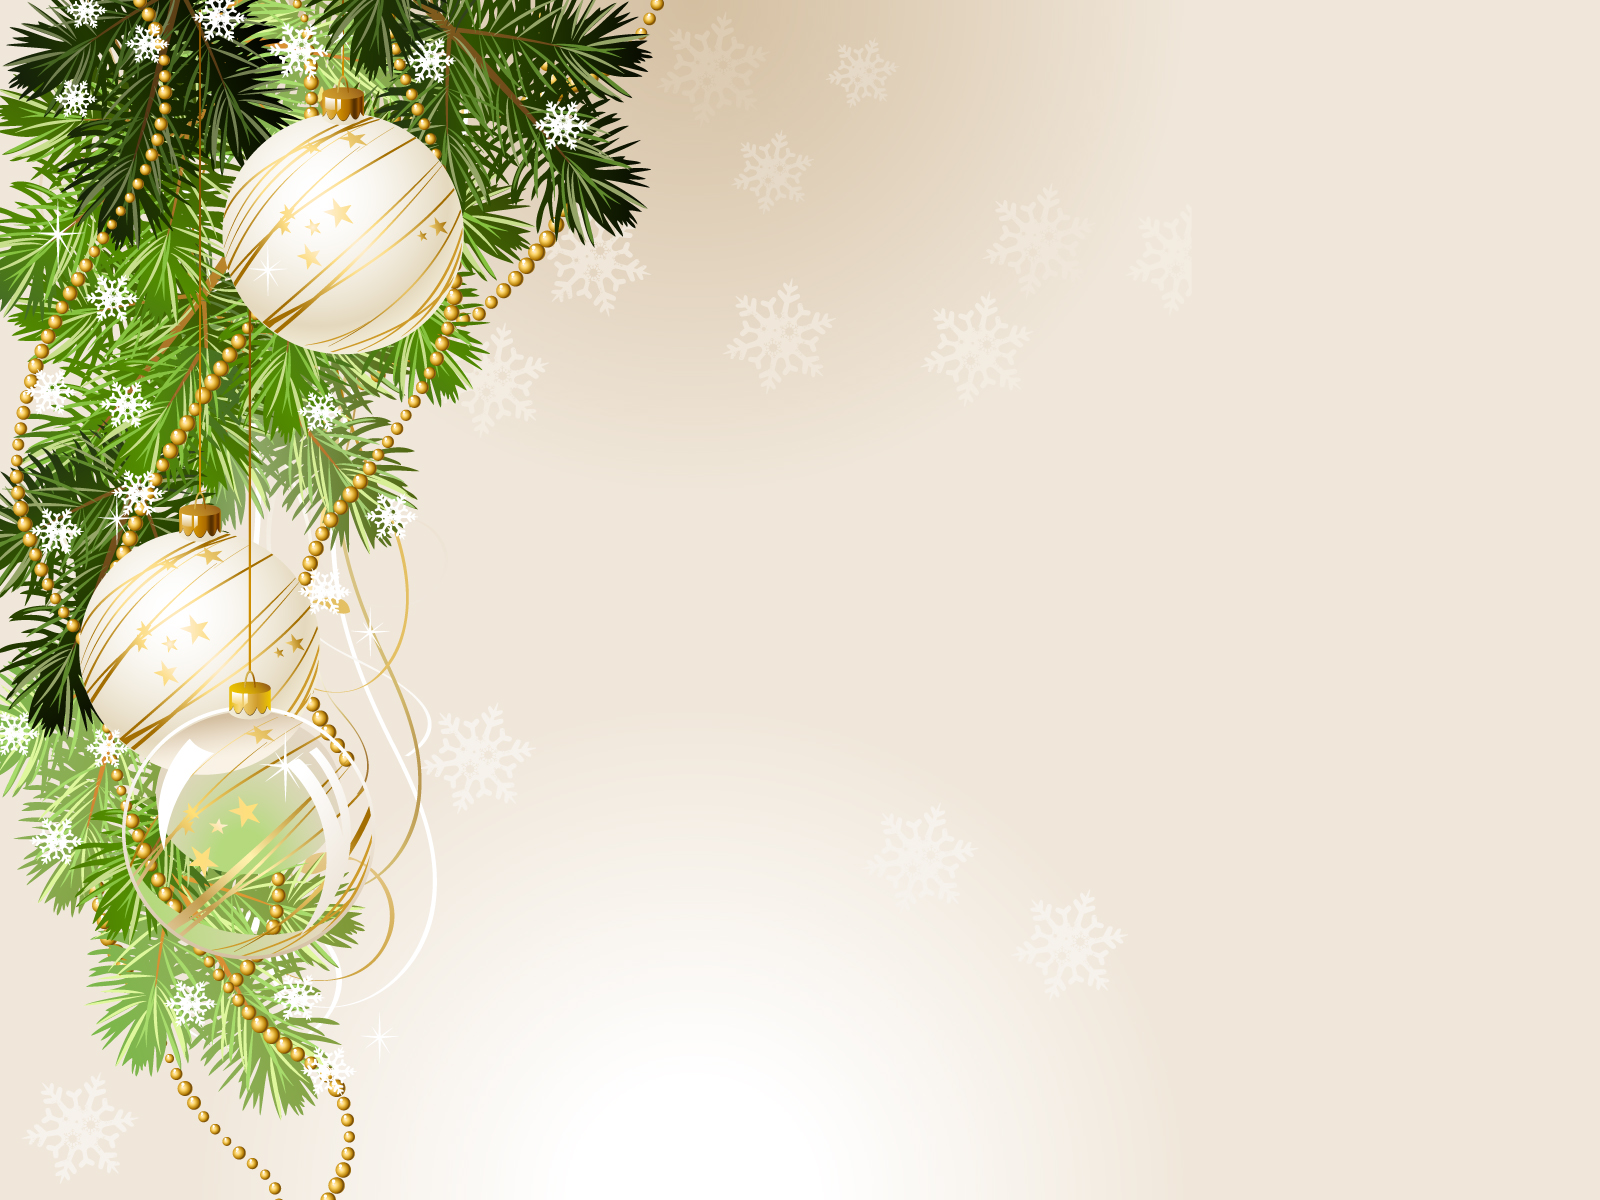 Christmas 2013 New Years Holidays Backgrounds Christmas